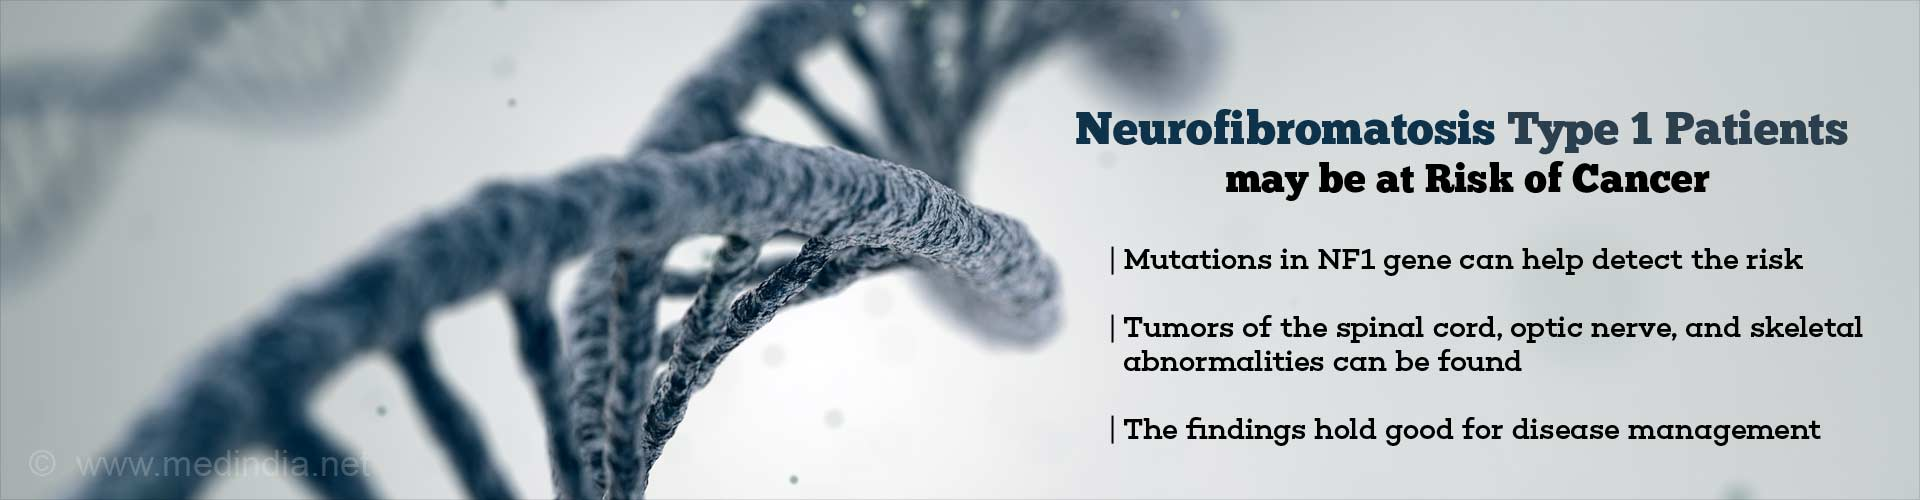 Cancer Risk in Neurofibromatosis Patients Due to Mutations